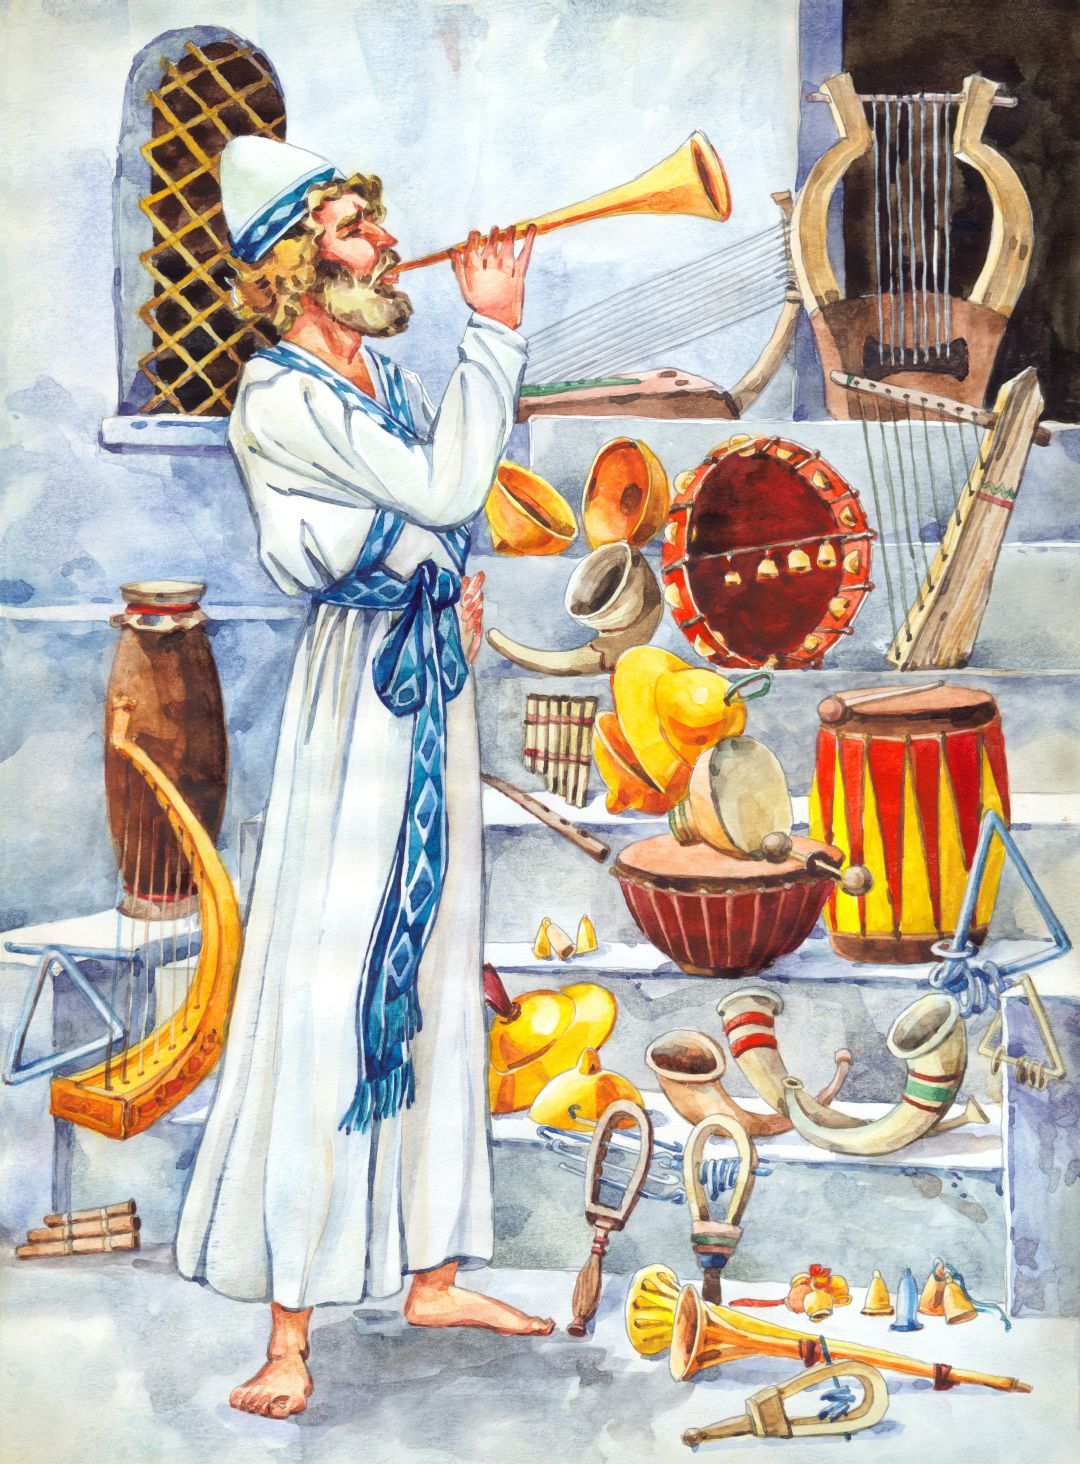 A Kohen glorifies God psalms playing on copper pipe or trumpet.  On  the Temple steps are a lyre, harp, tambourine, cymbals, flute, zither,  trigon, psaltery, and symphony.